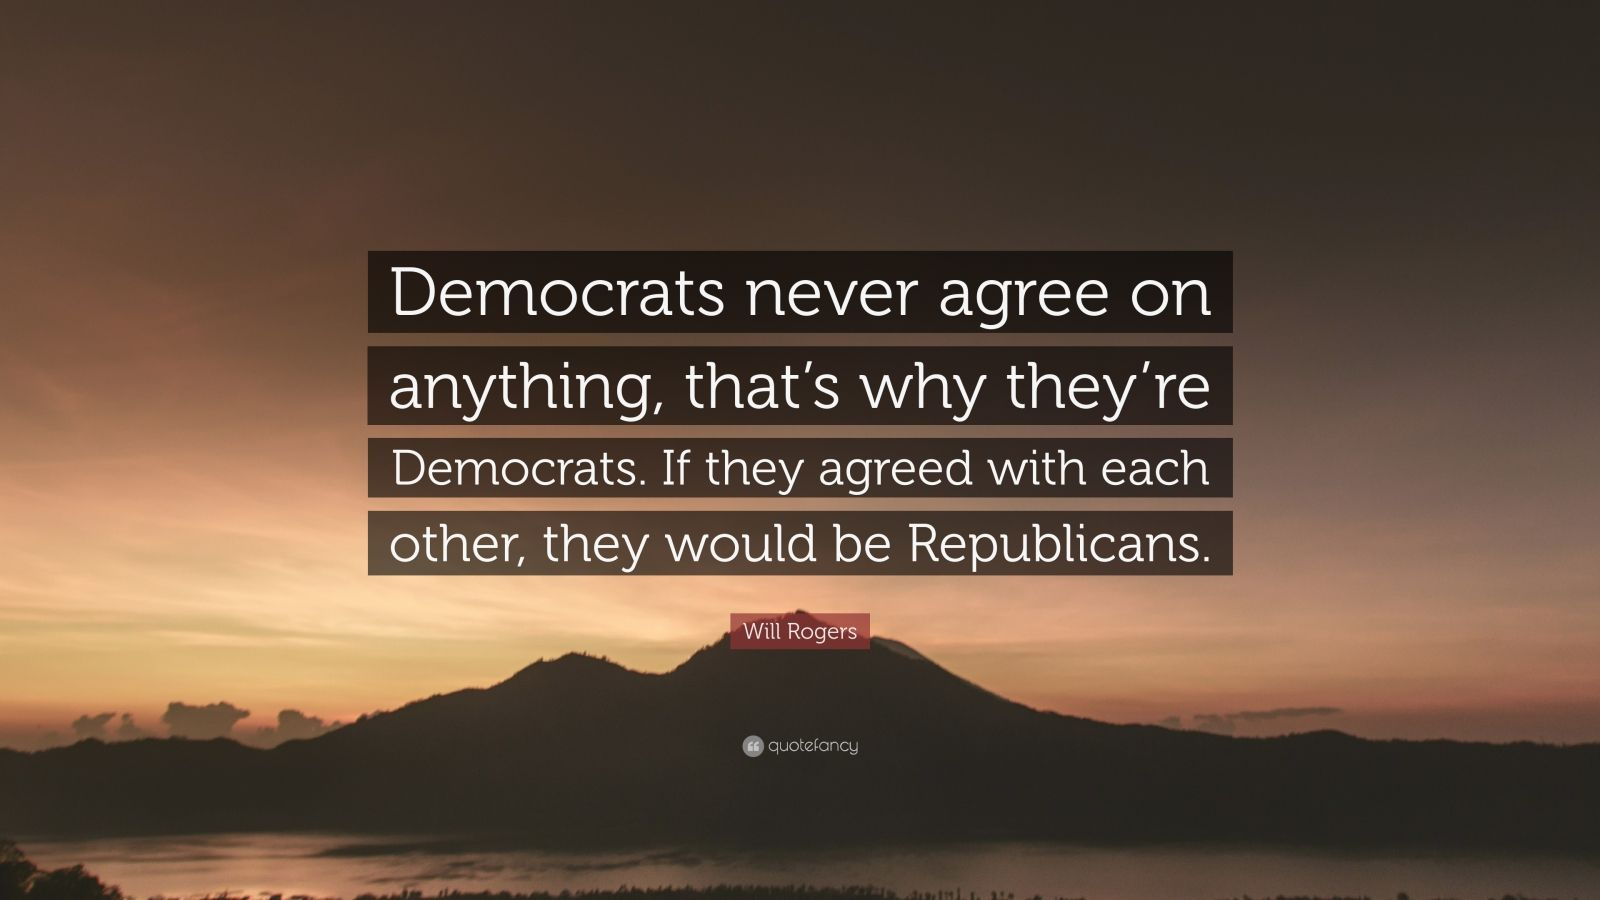 """Will Rogers Quote: """"Democrats never agree on anything, that's why they're Democrats. If they agreed with each other, they would be Republicans."""""""